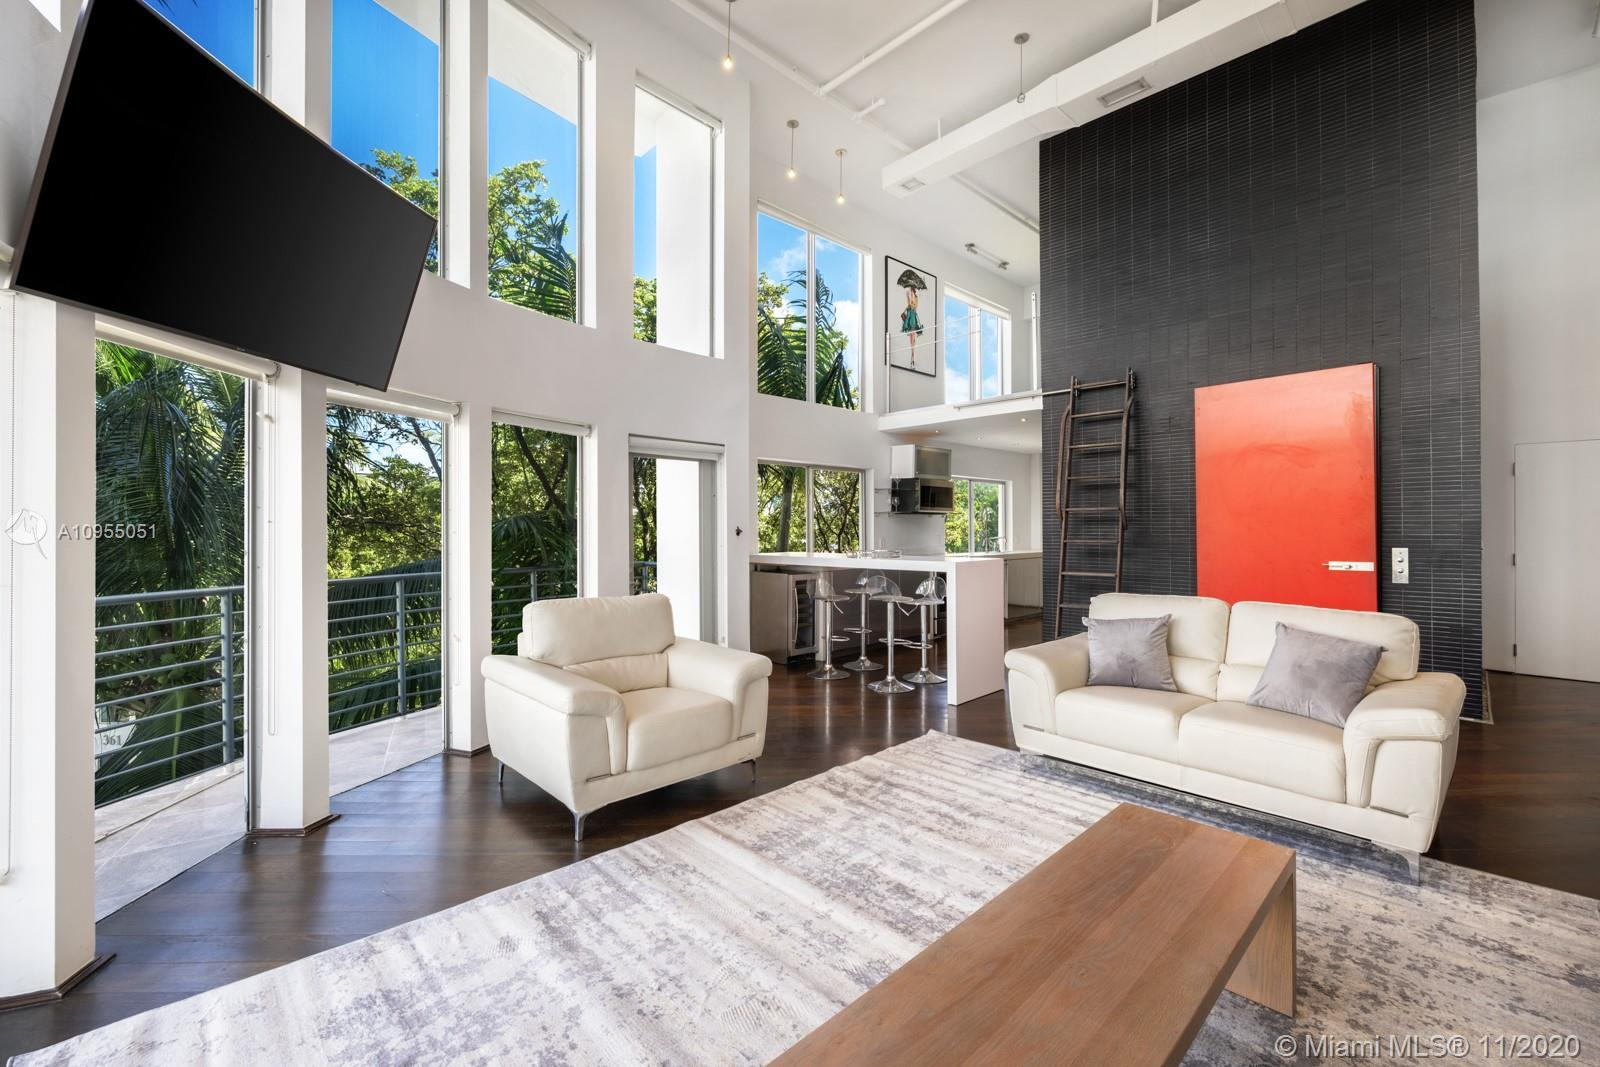 Manhattan Lofts #5 is a beautiful 2-story residence nestled in the heart of South of 5th. This premi